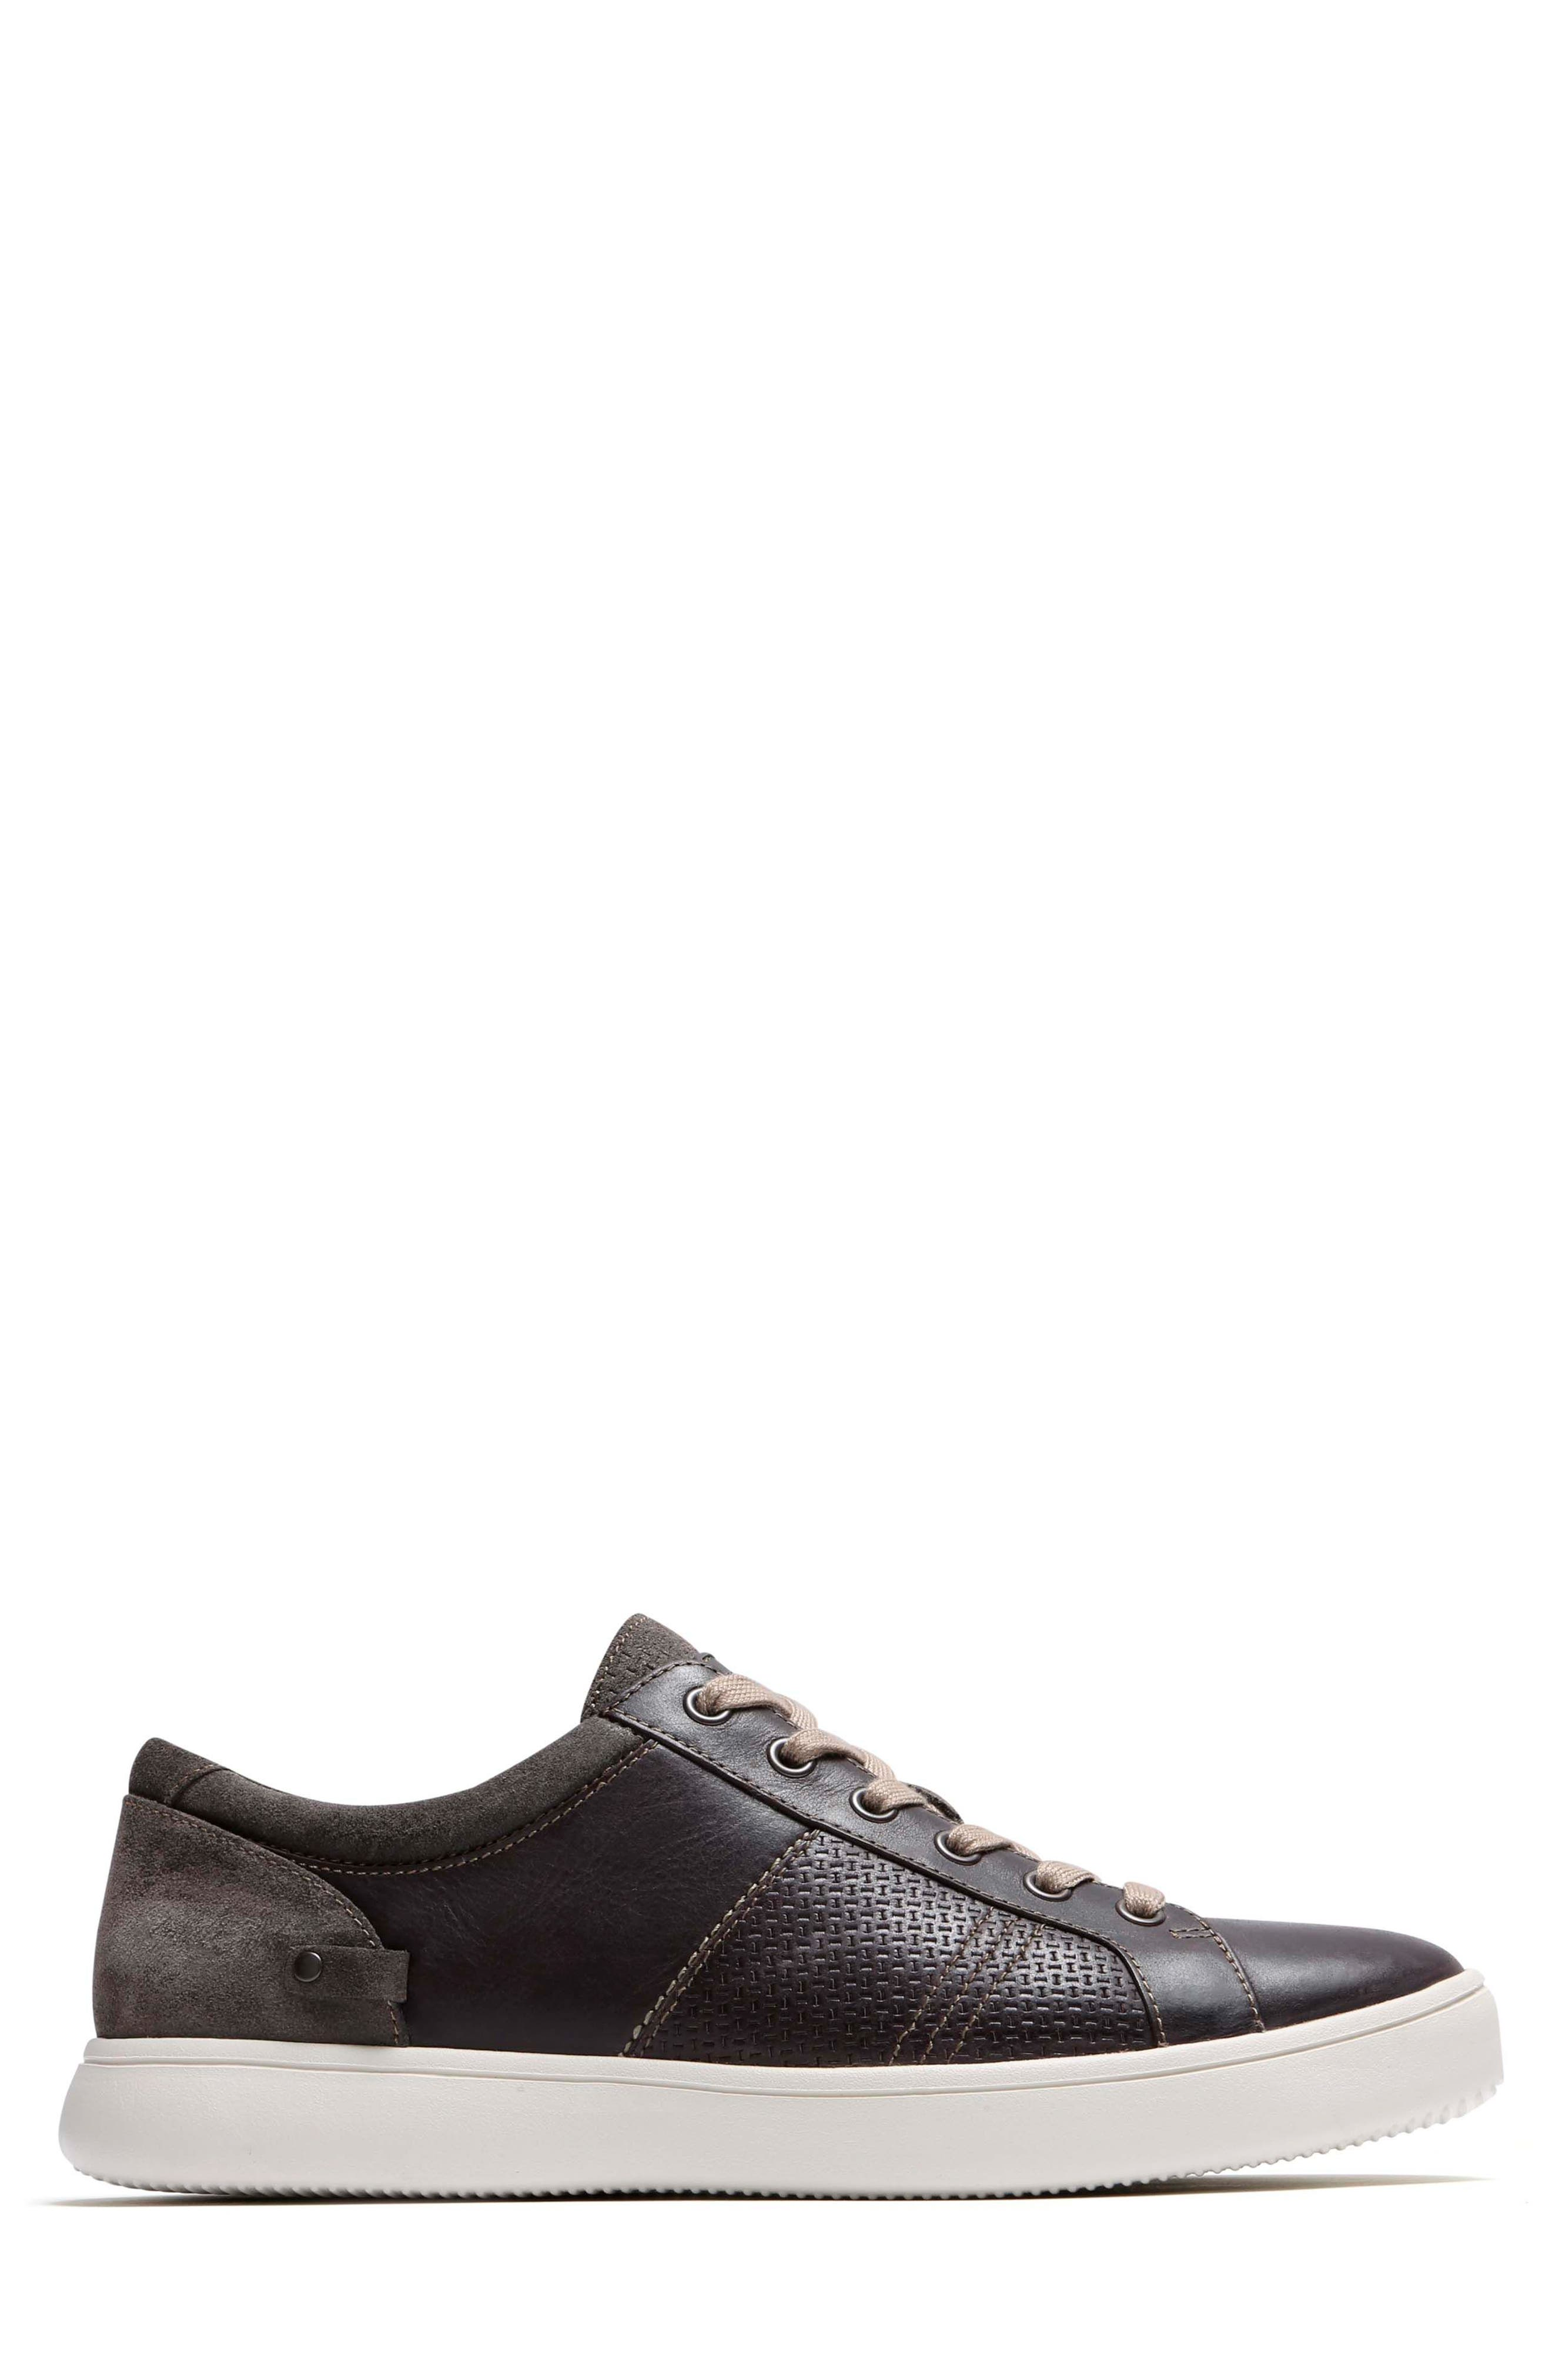 Colle Textured Sneaker,                             Alternate thumbnail 3, color,                             Coffee Leather